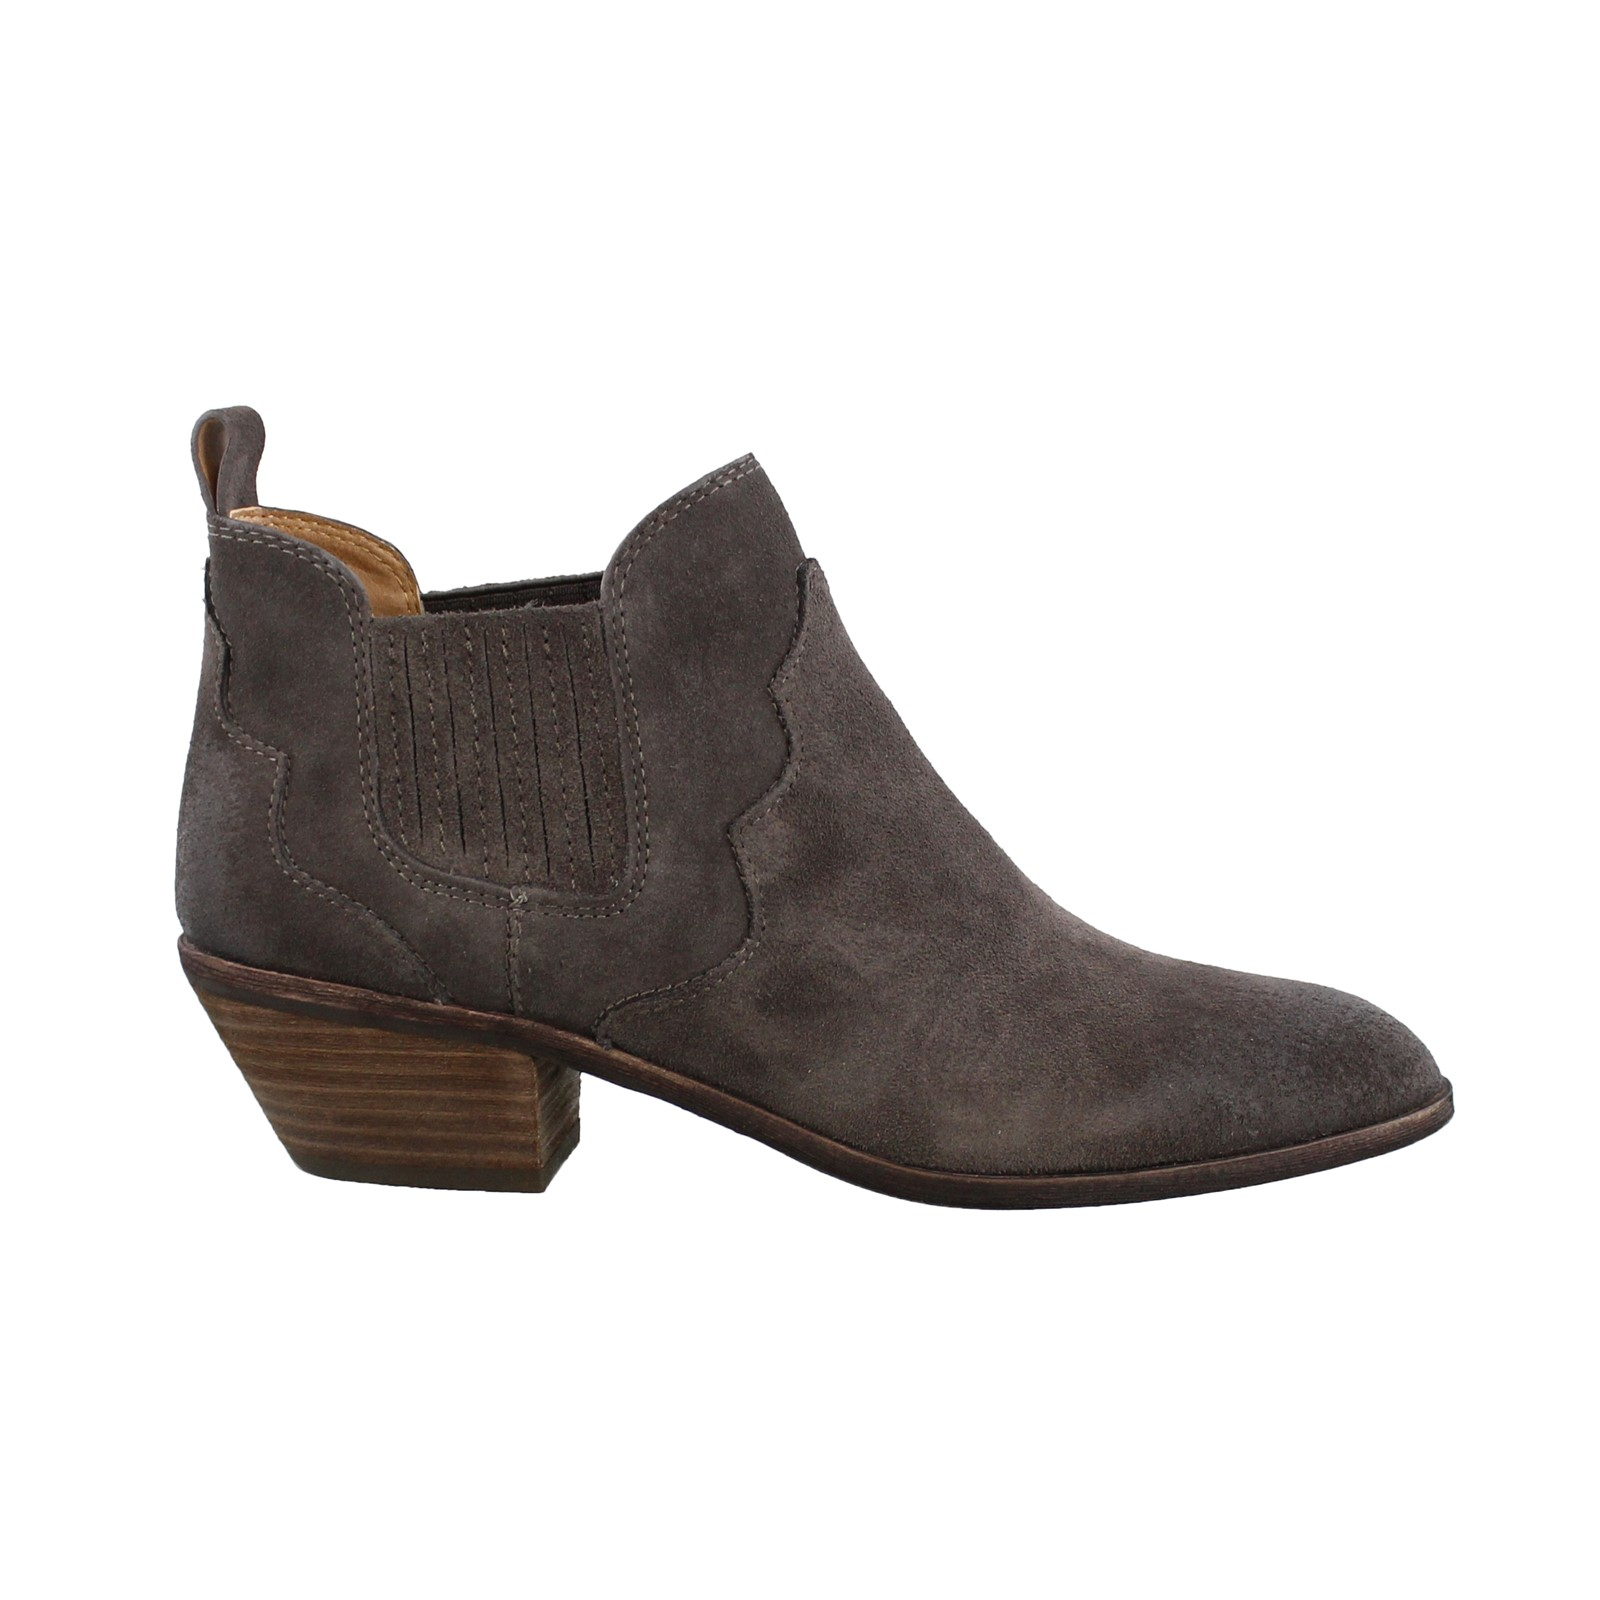 Women's GH Bass and Co, Naomi Ankle Boots